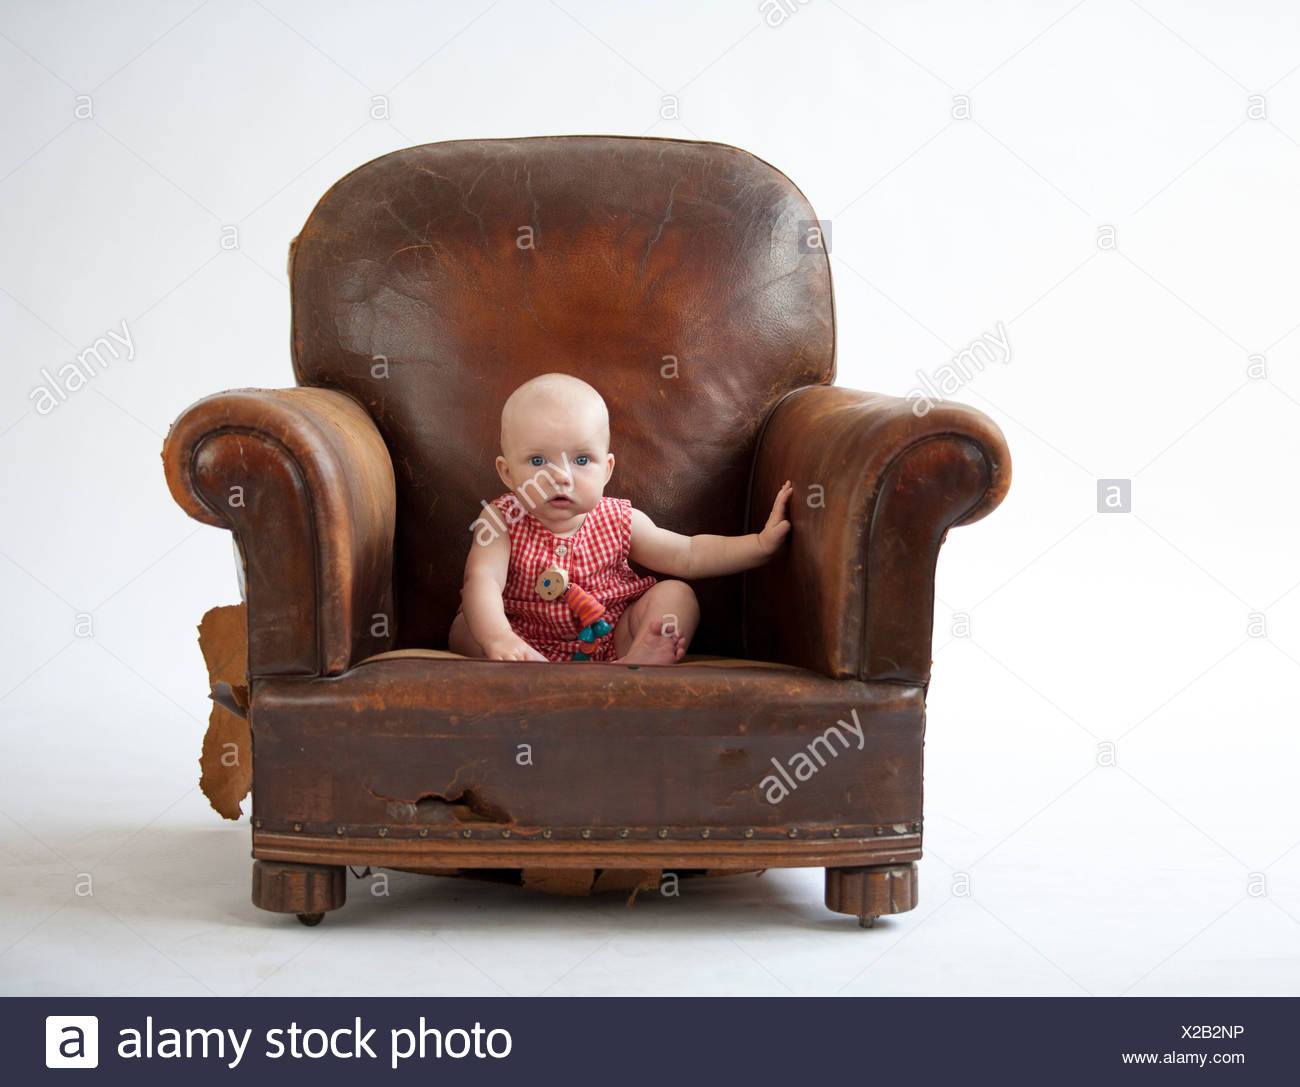 Baby Sitting In Old Leather Chair   Stock Image